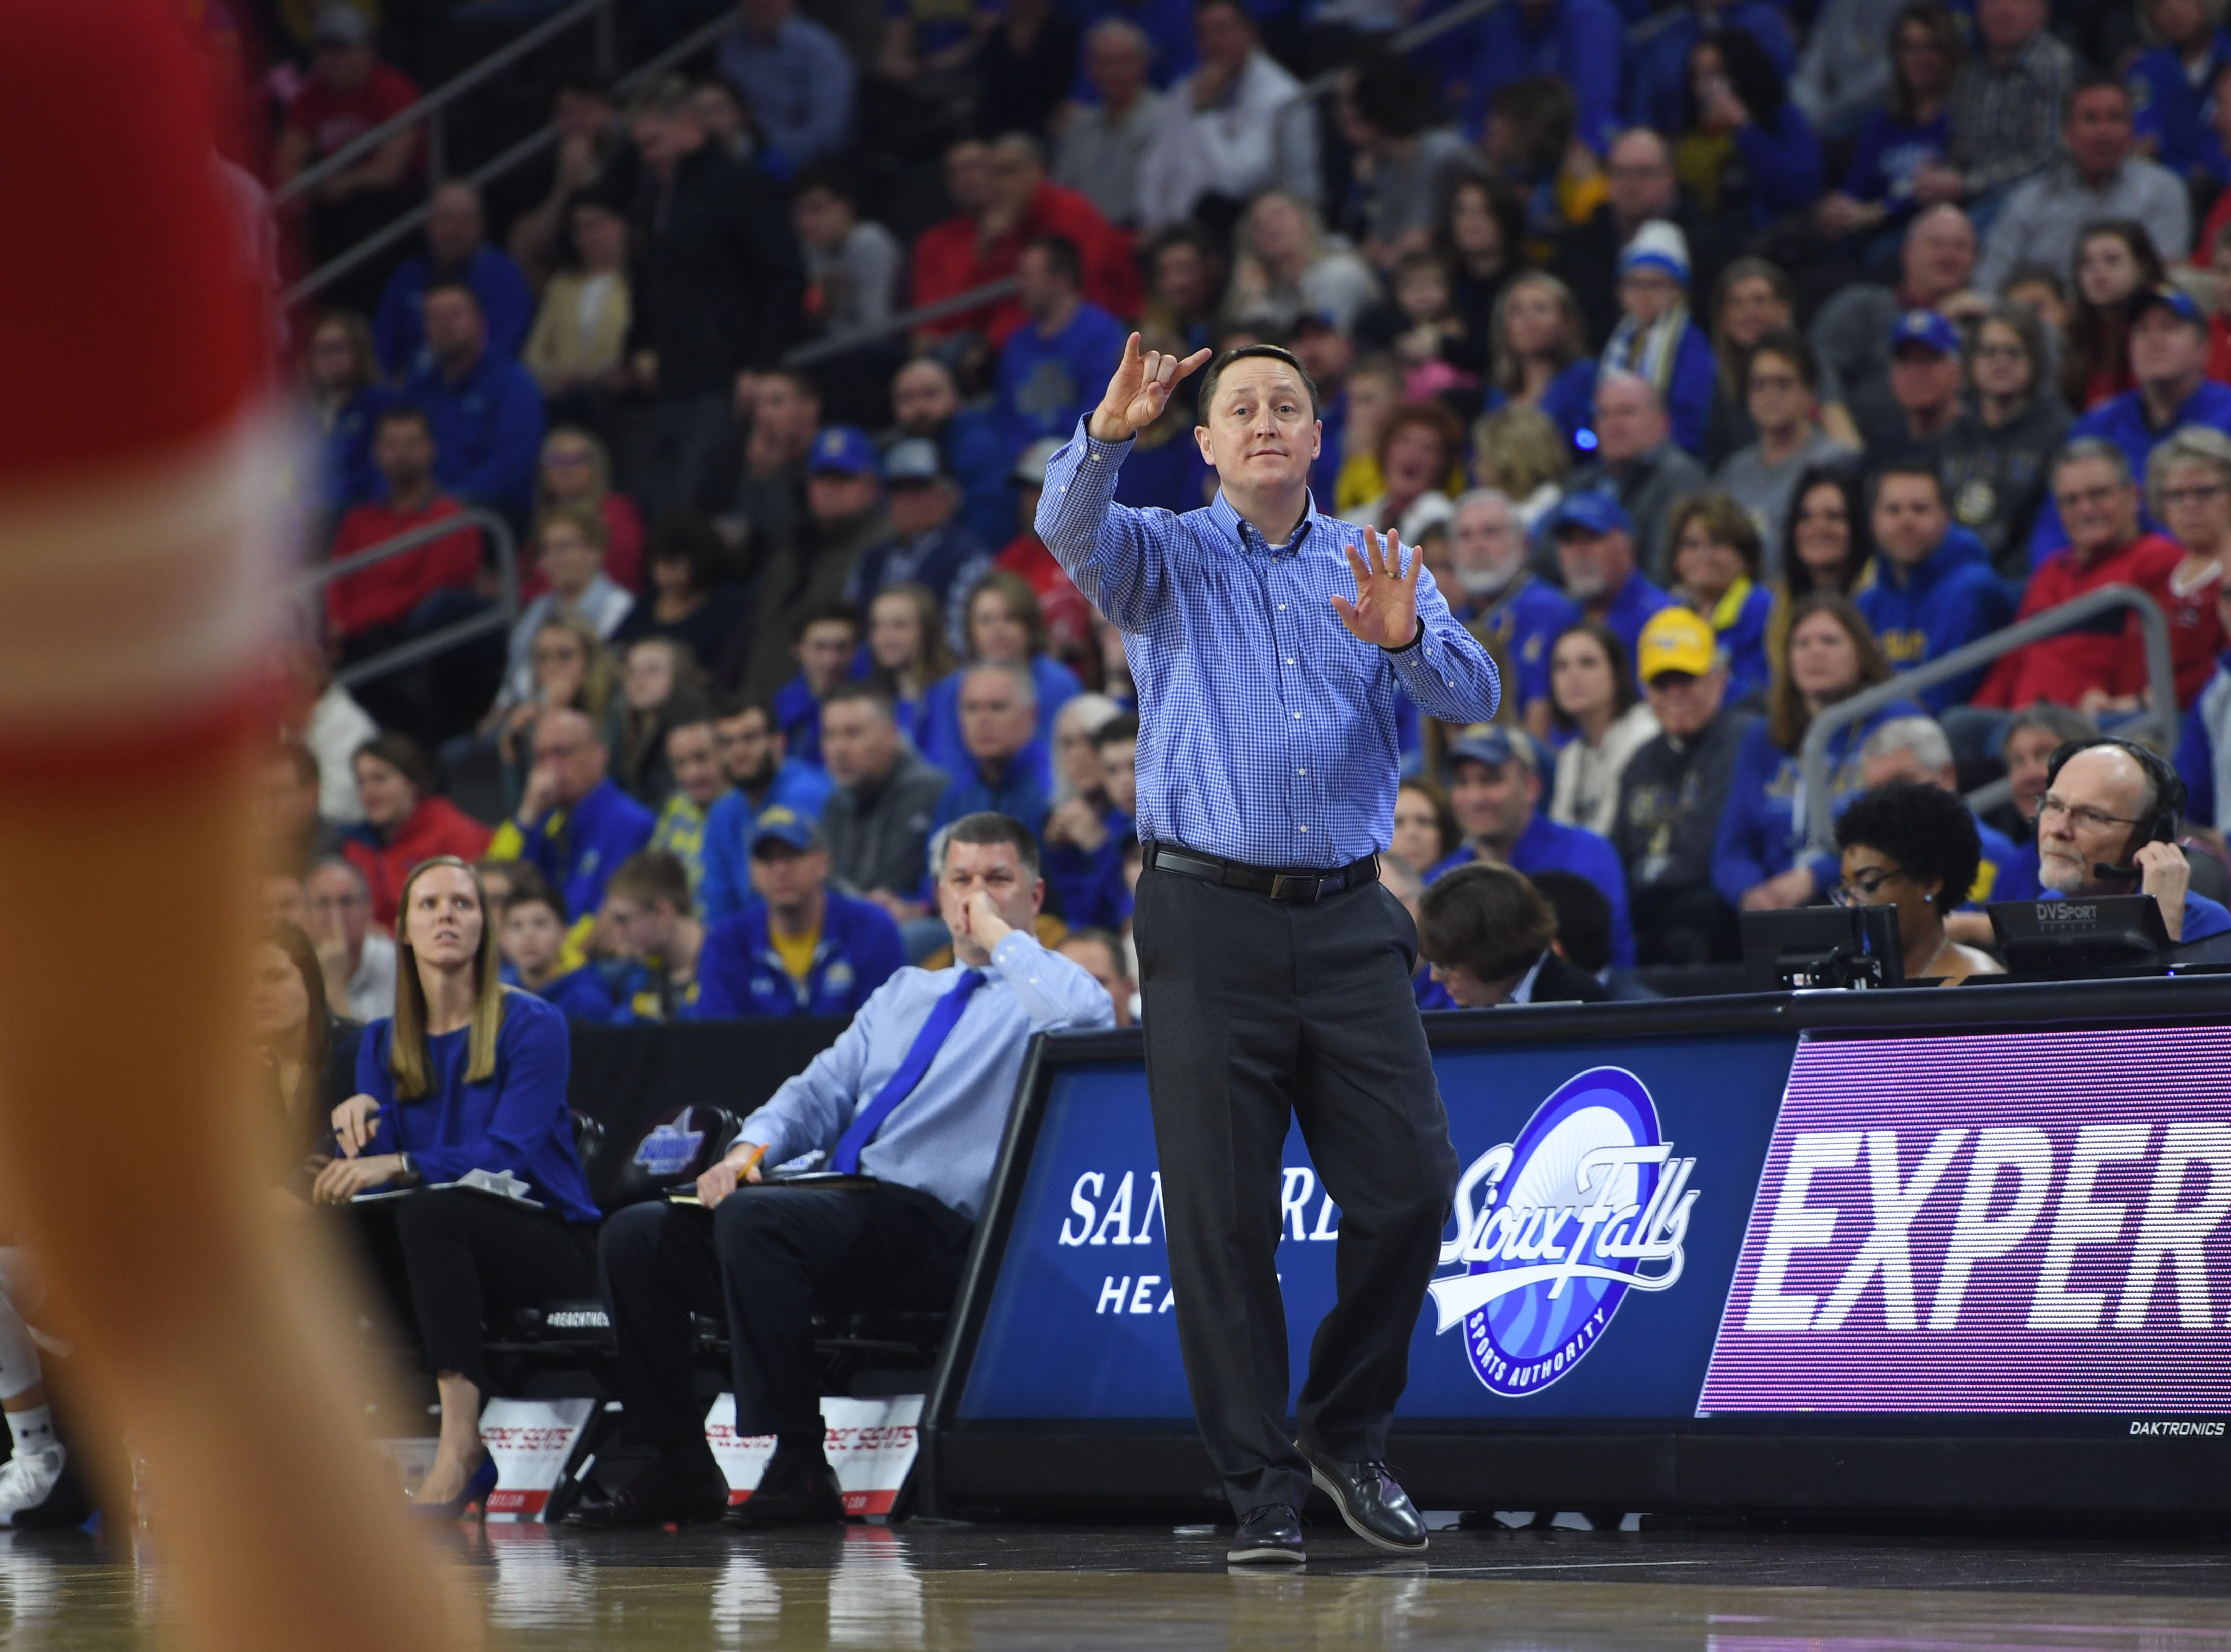 SDSU head coach Aaron Johnston talks to the team during the game against USD Tuesday, March 12, in the Summit League women's championship at the Denny Sanford Premier Center in Sioux Falls.